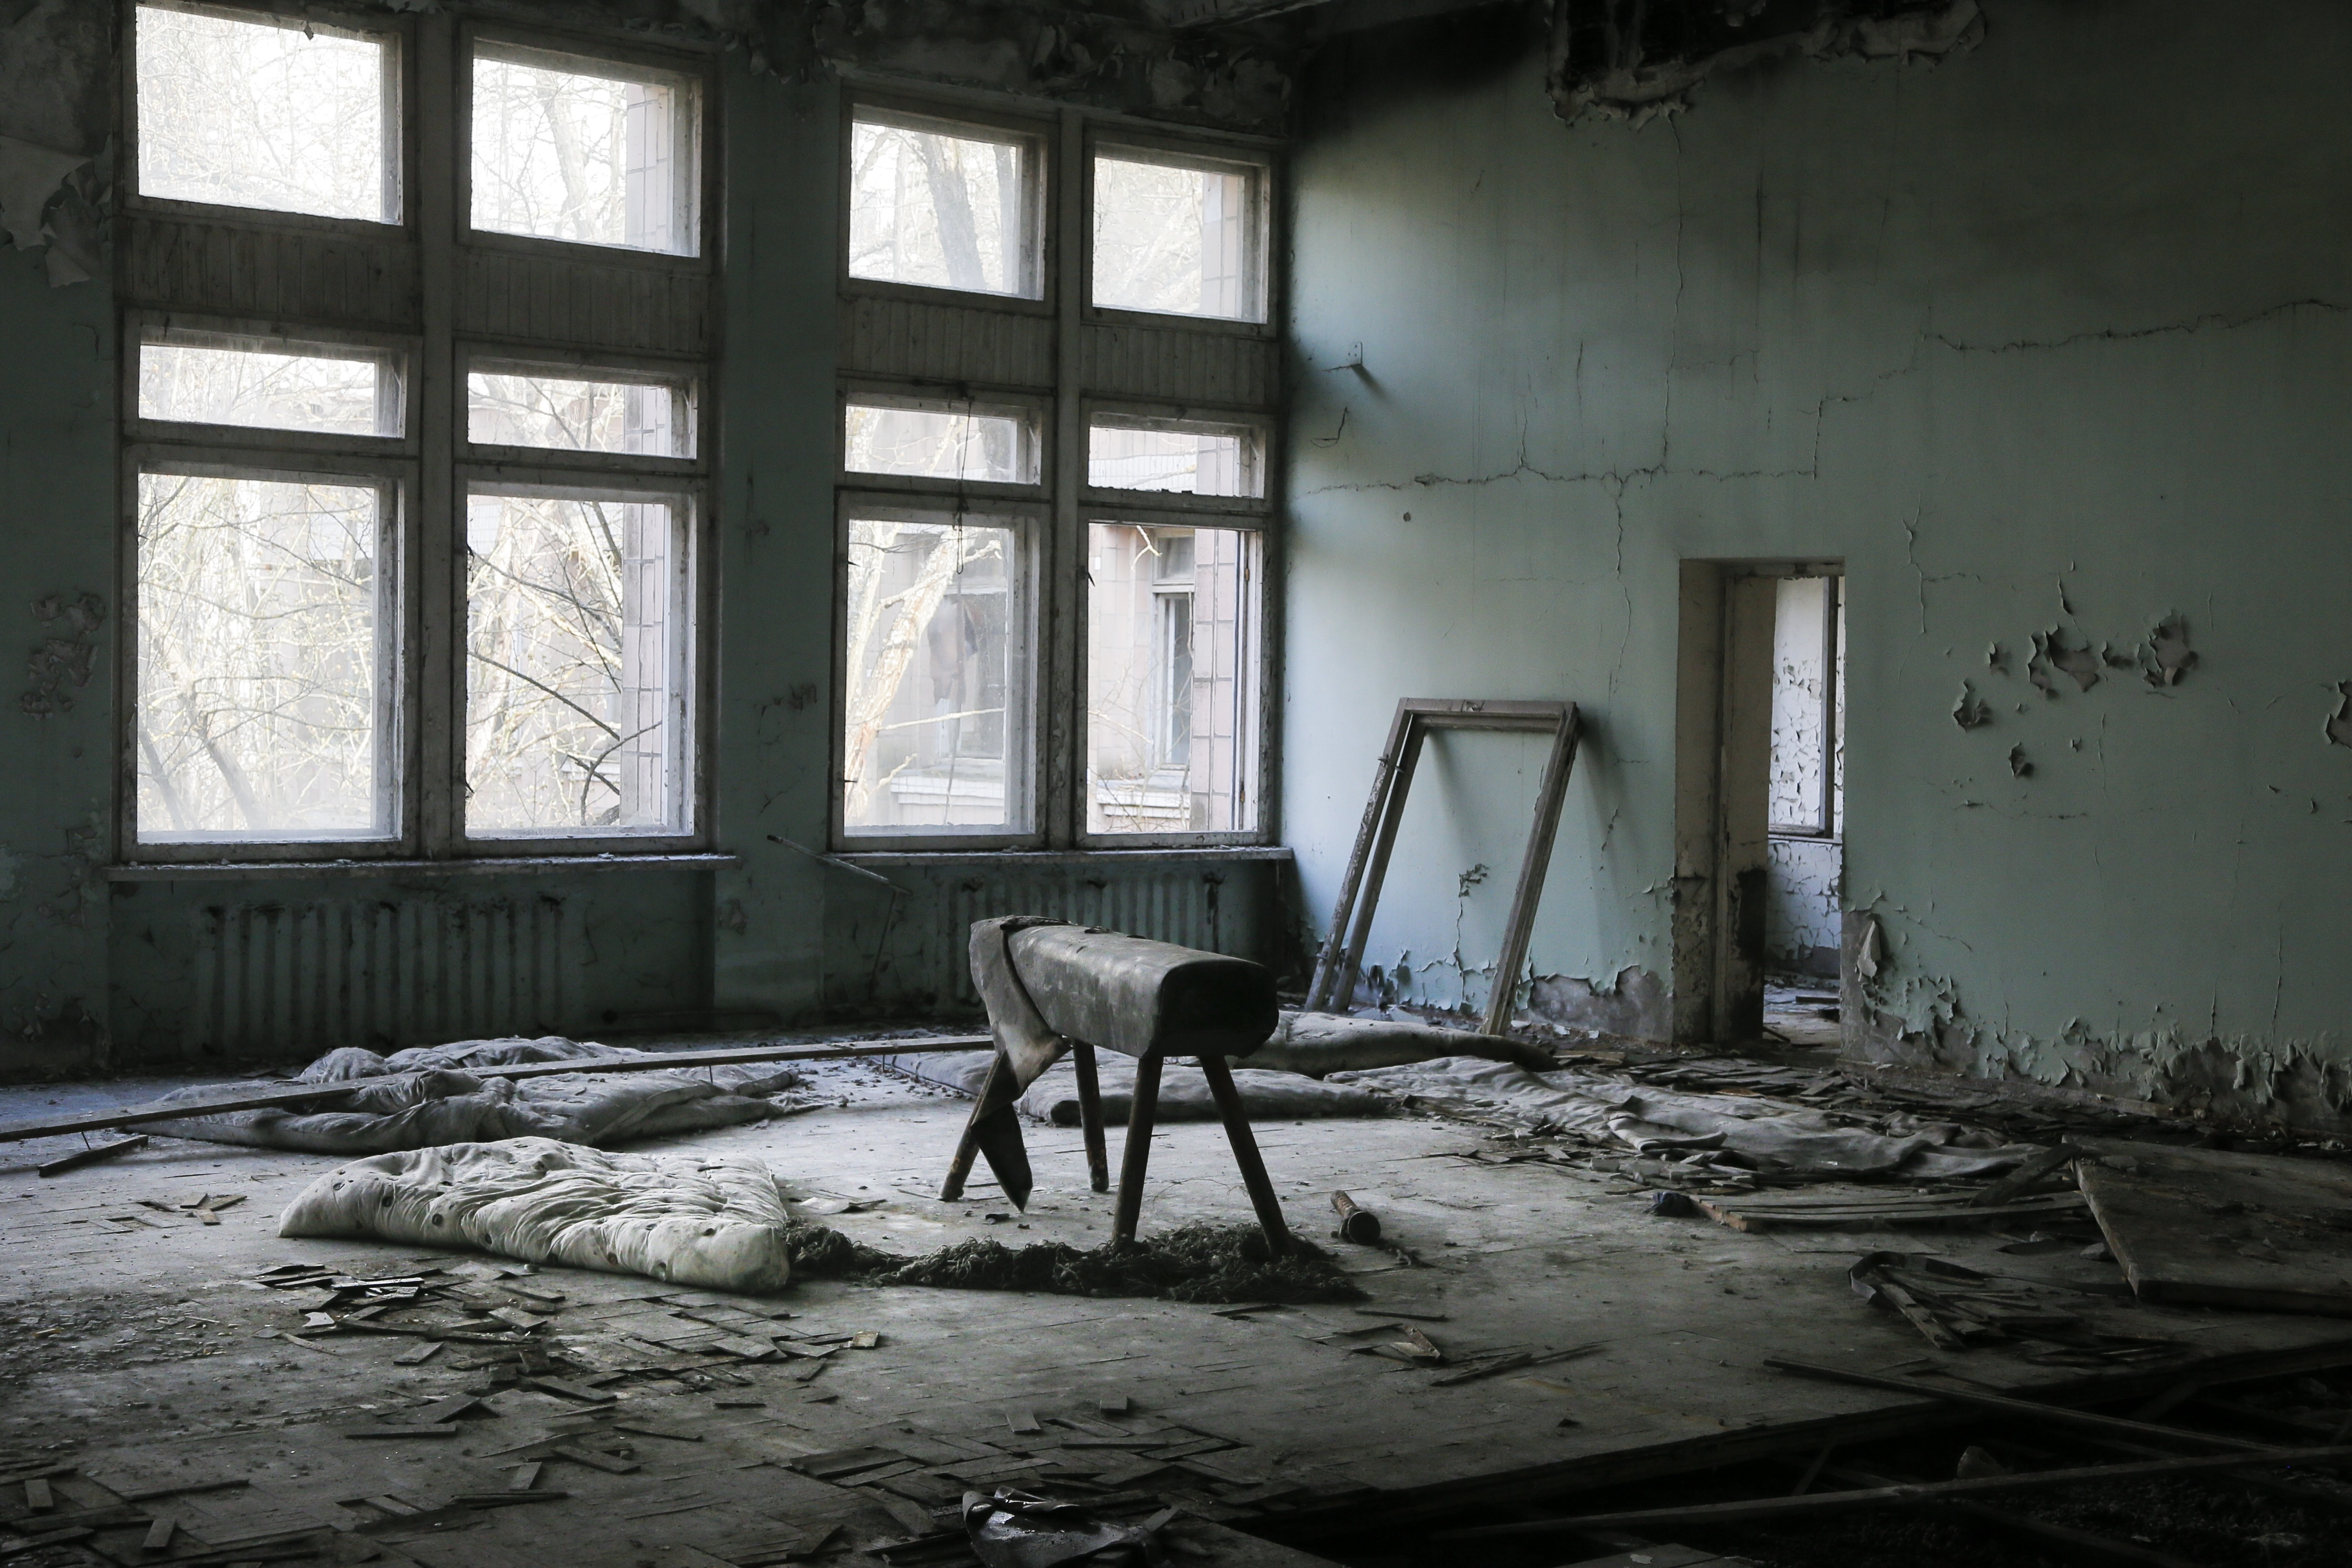 Chernobyl Aftermath This photo taken Wednesday, April 5, 2017, shows a gymnasium in a school in the deserted town of Pripyat, some 3 kilometers (1.86 miles) from the Chernobyl nuclear power plant Ukraine. Once home to some 50,000 people whose lives were connected to the Chernobyl nuclear power plant, Pripyat was hastily evacuated one day after a reactor at the plant 3 kilometers (2 miles away) exploded on April 26, 1986. The explosion and the subsequent fire spewed a radioactive plume over much of northern Europe. (AP Photo/Efrem Lukatsky)